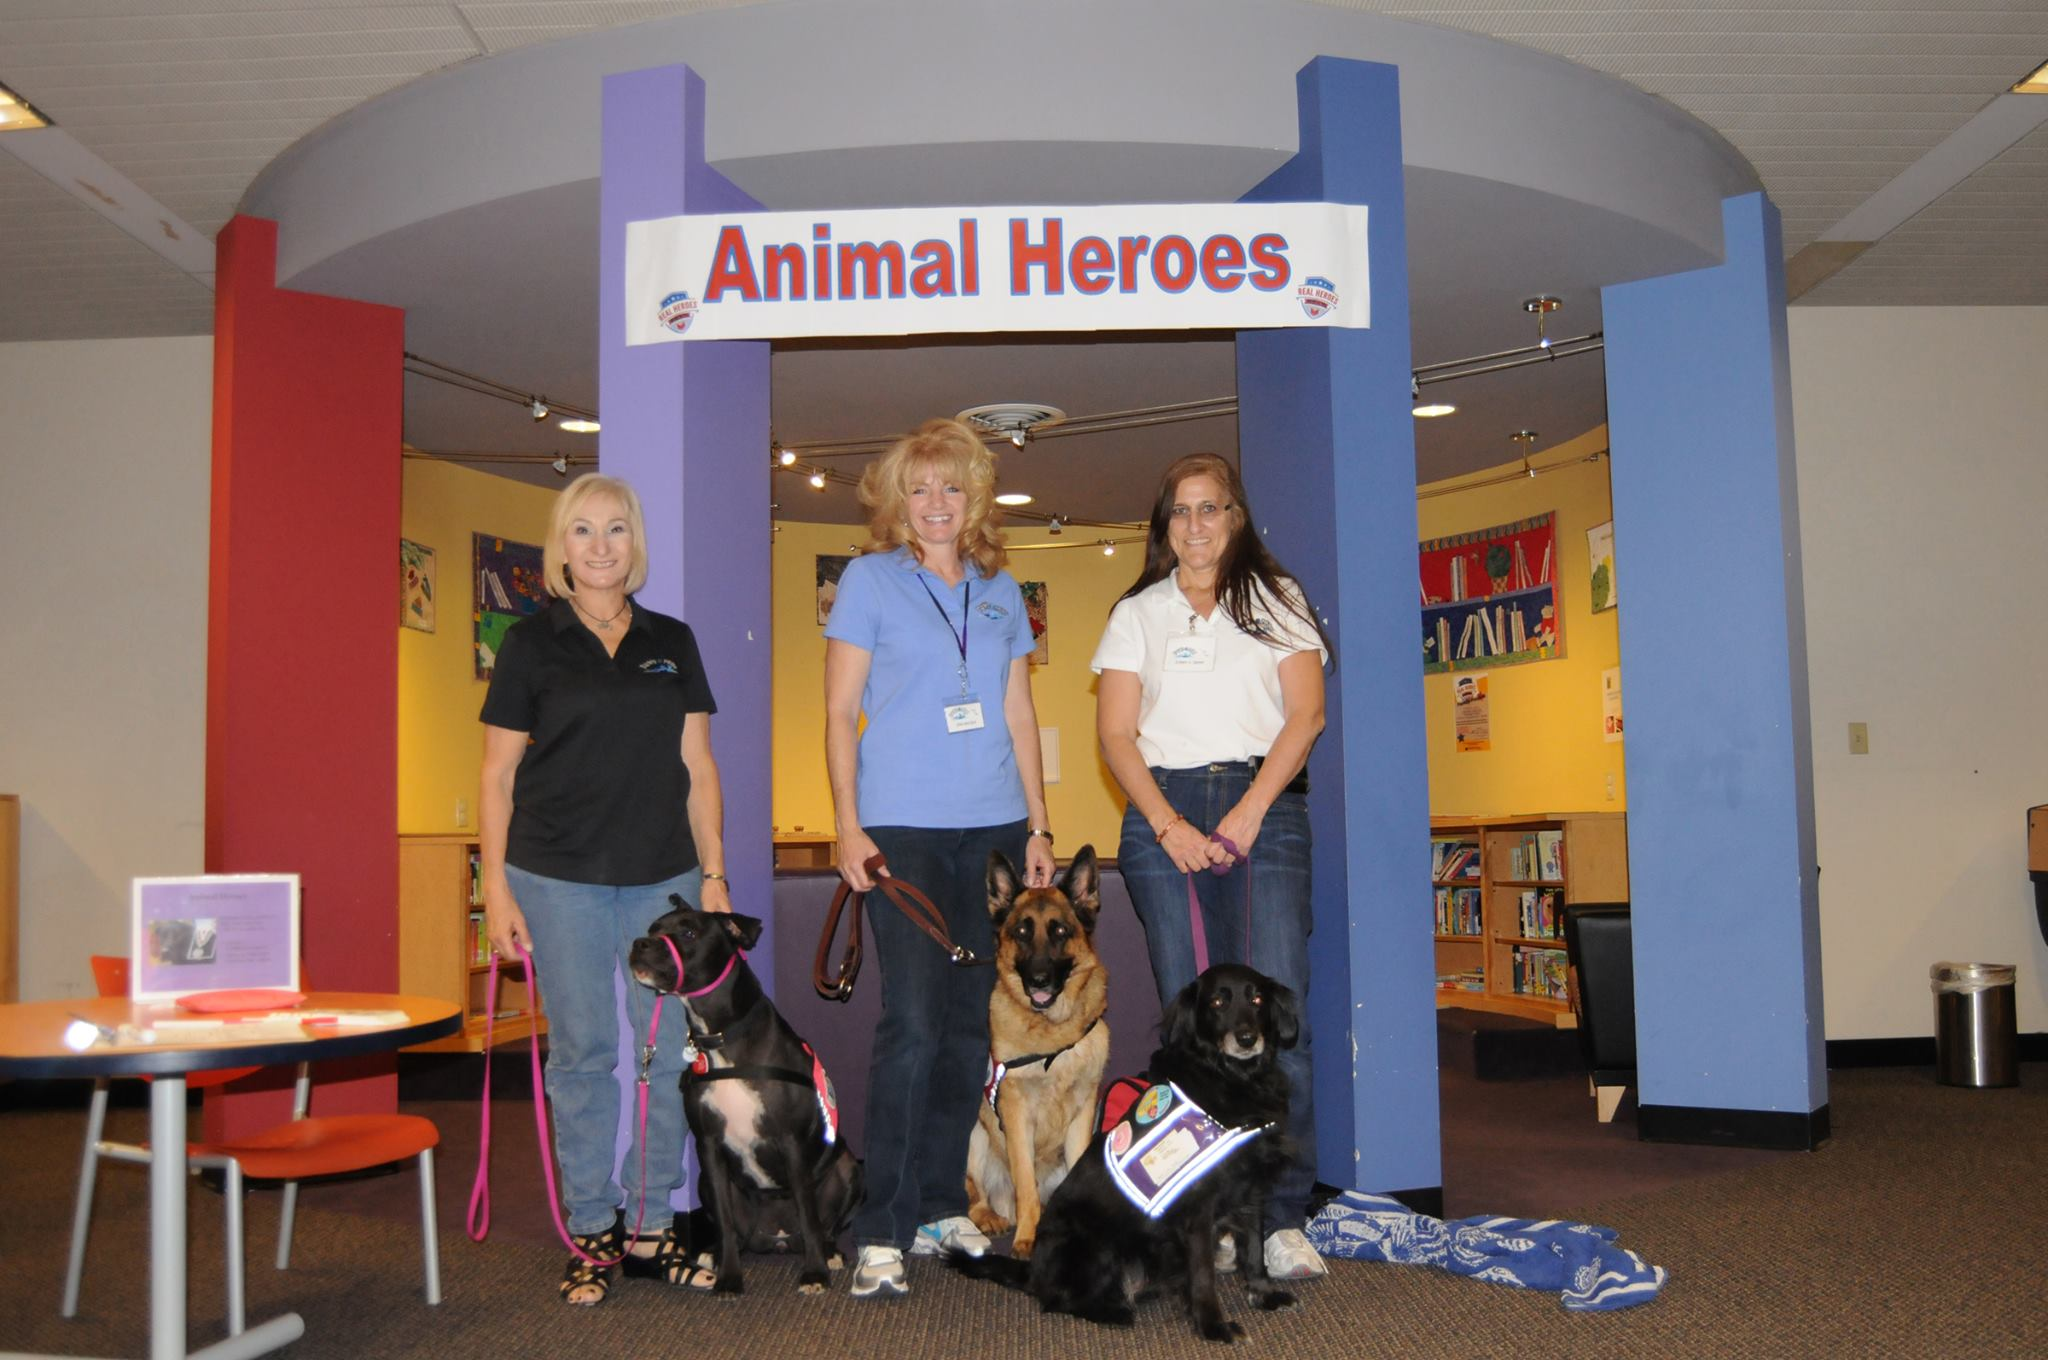 Animal Heros_Library event